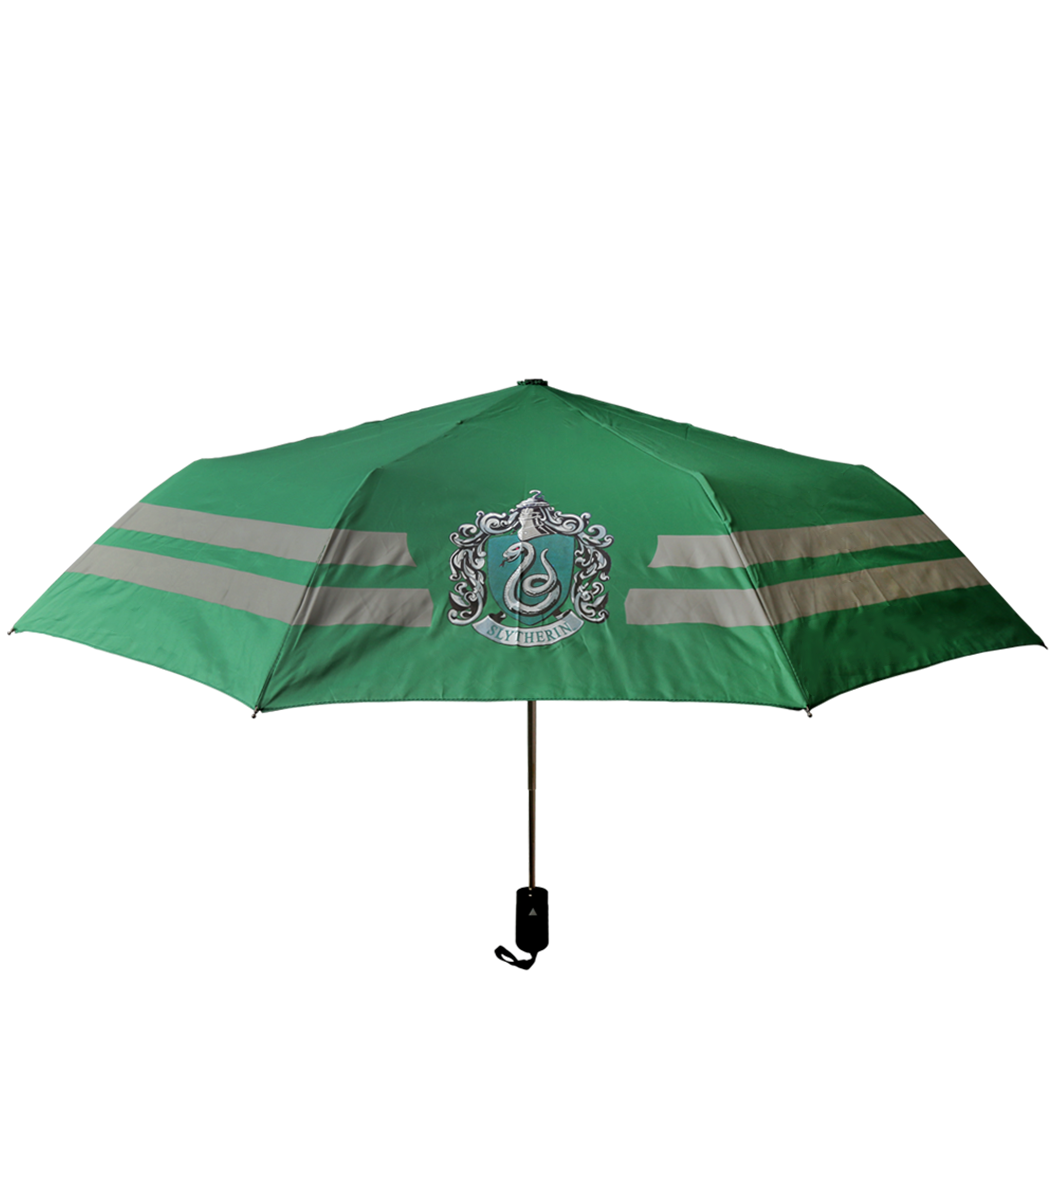 https://cdn.shopify.com/s/files/1/0221/1146/products/Slytherin_Umbrella.png?v=1511449728